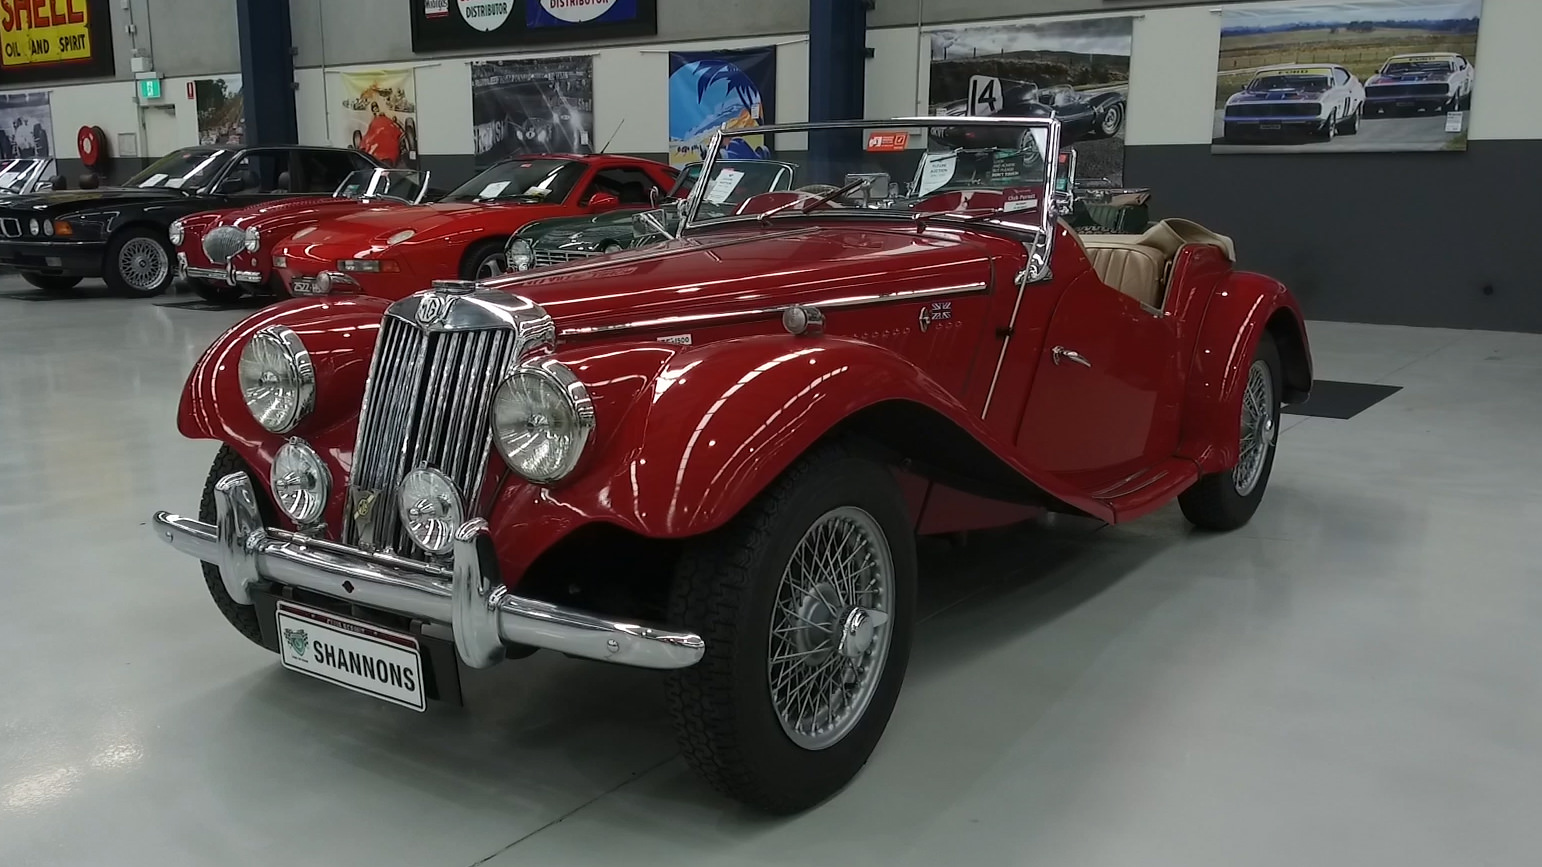 1955 MG TF1500 Roadster - 2021 Shannons Autumn Timed Online Auction